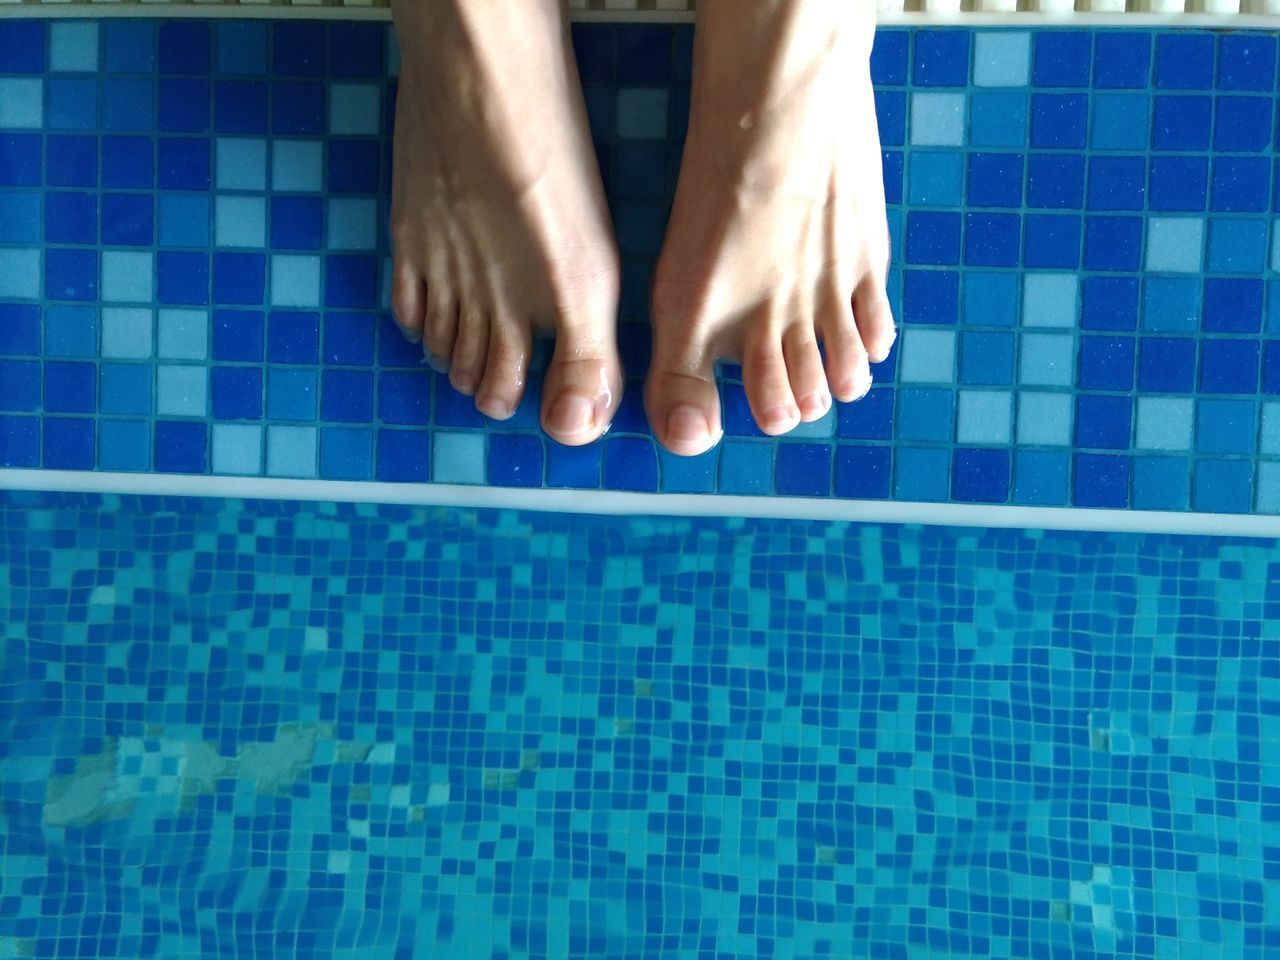 swimming pool, human body part, tile, human foot, low section, barefoot, domestic bathroom, one person, human leg, water, bathroom, indoors, blue, women, close-up, domestic room, day, one woman only, adult, human hand, people, adults only